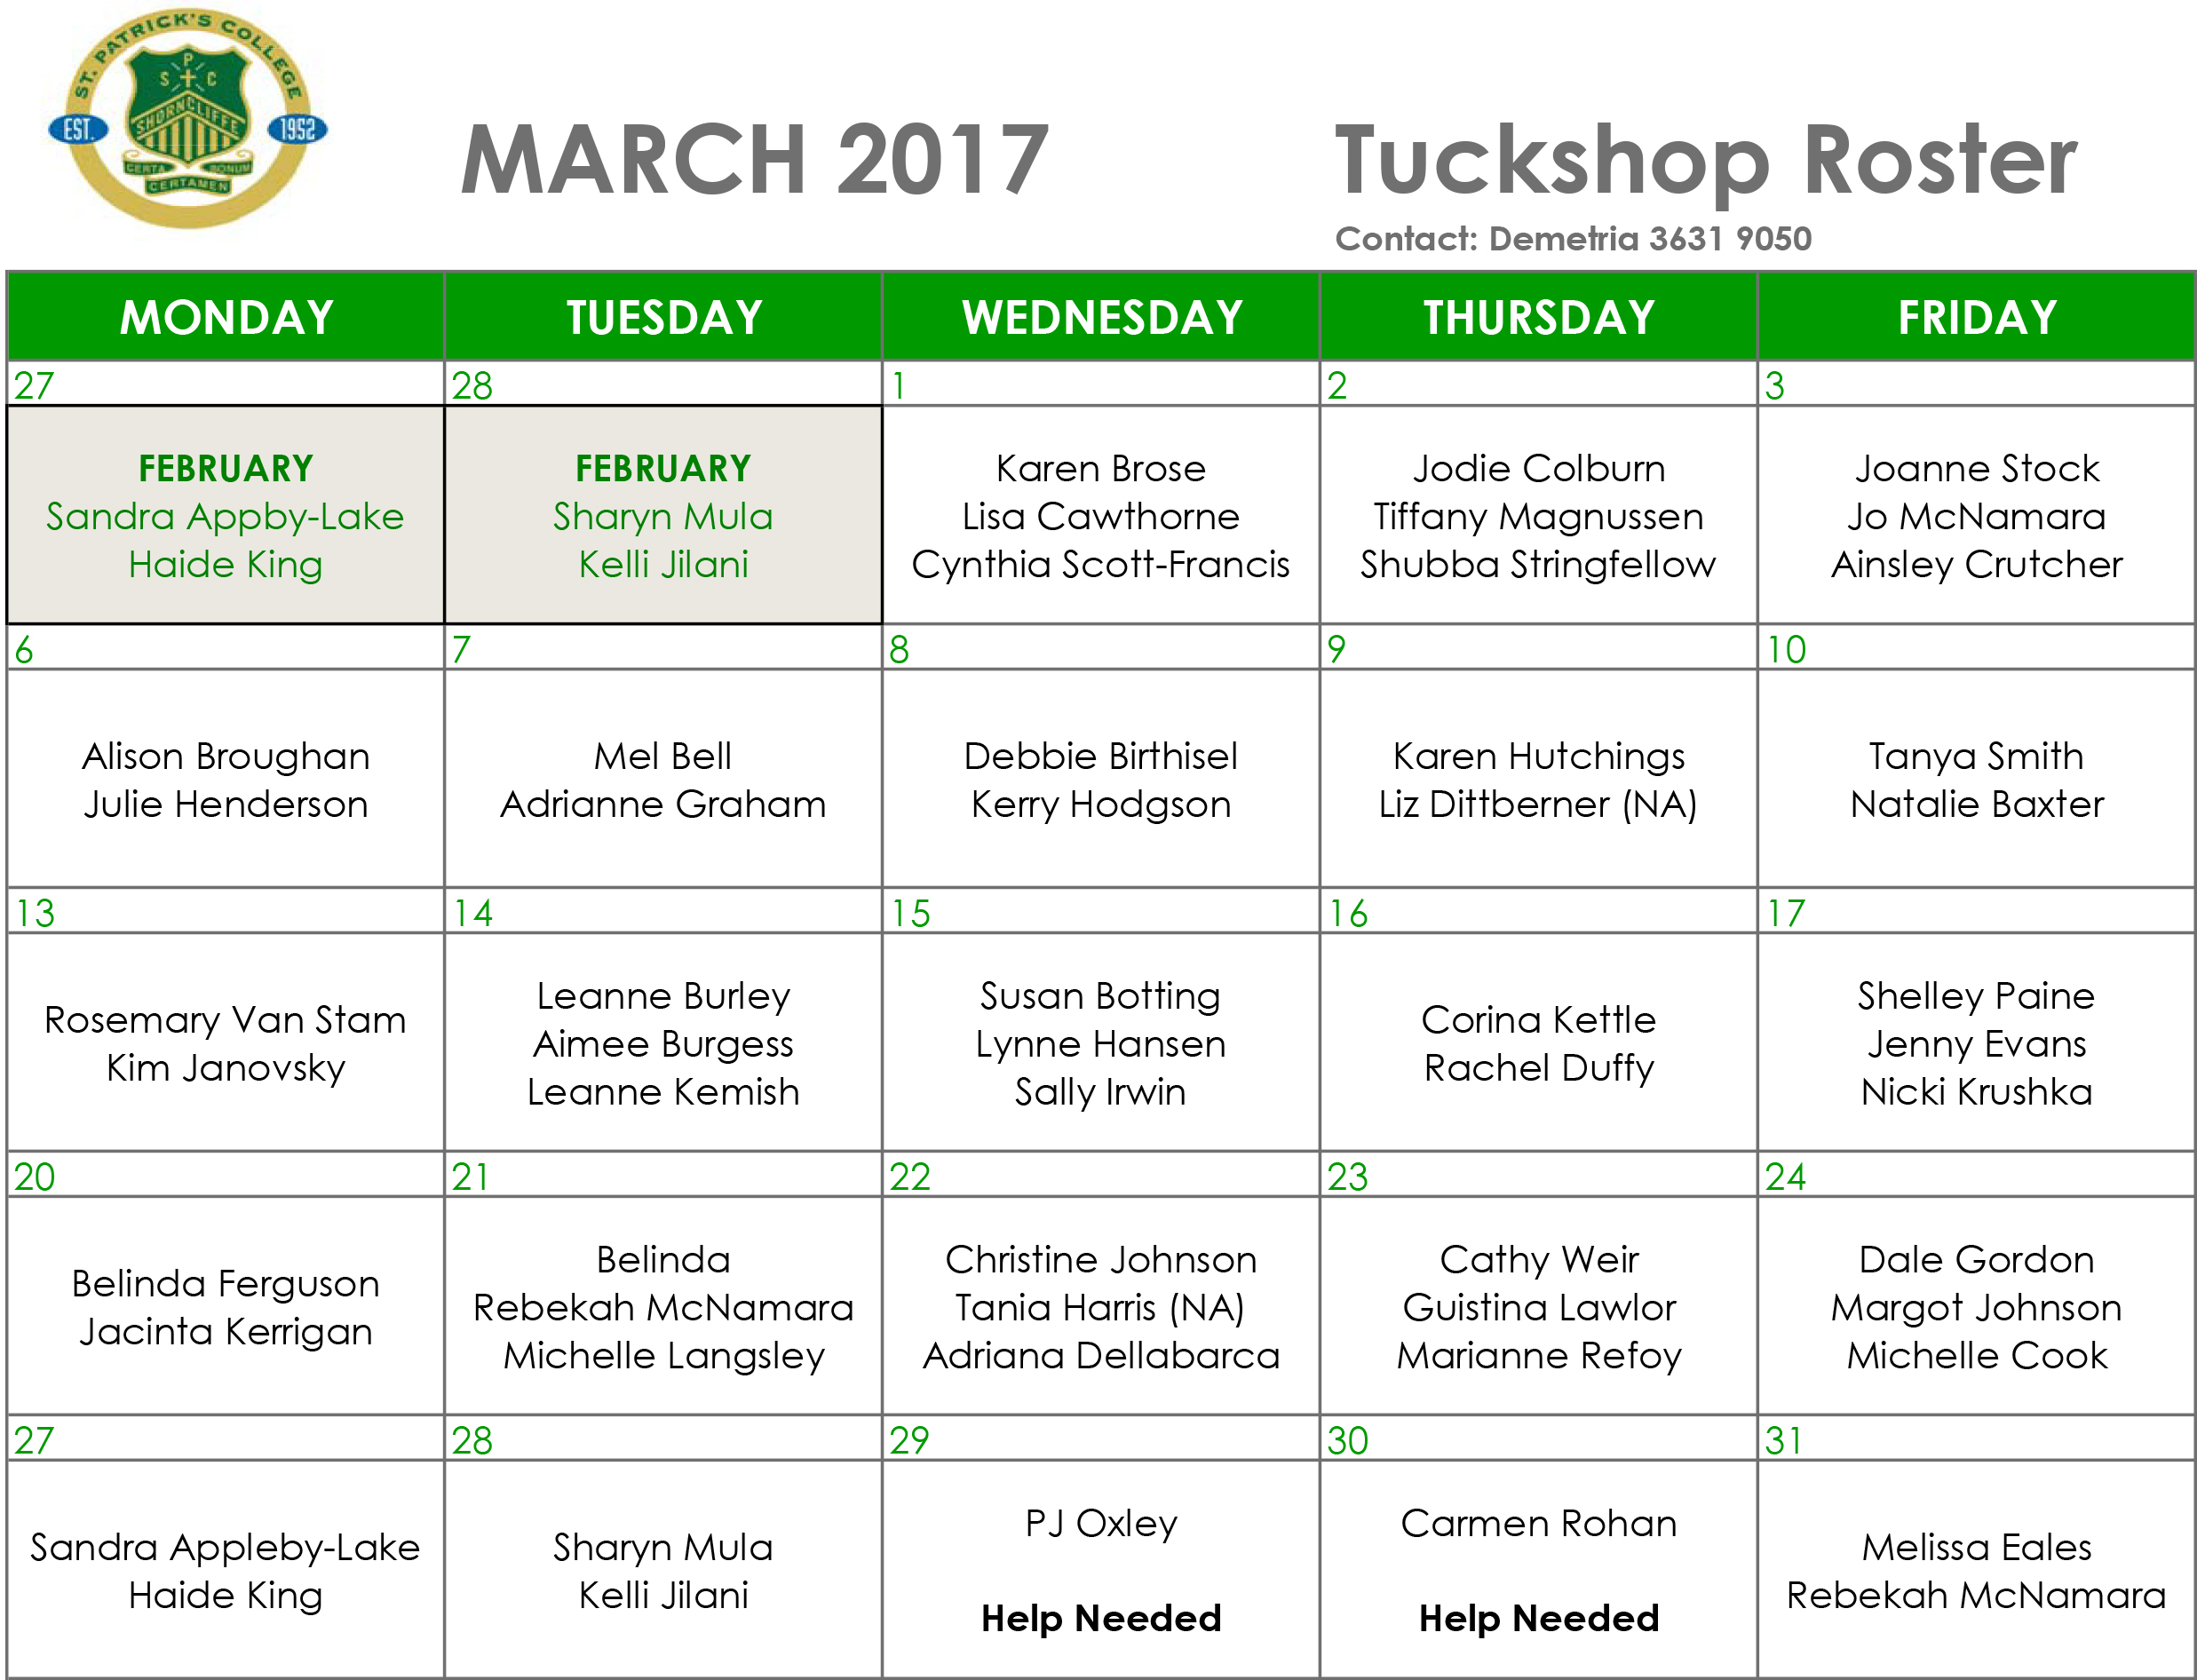 Tuckshop-Roster_March.jpg?mtime=20170223